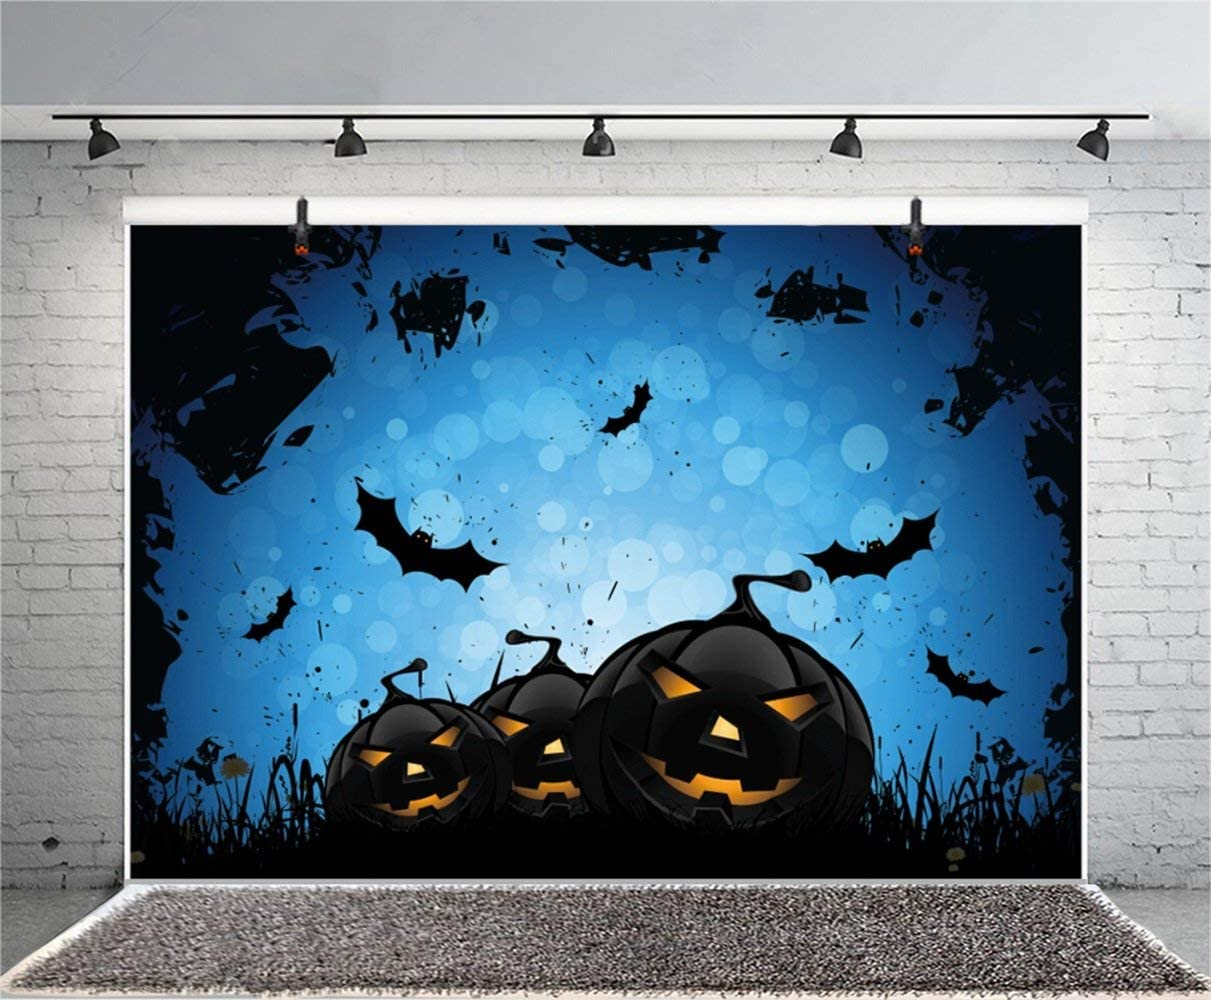 Halloween Theme Backdrop 10x6.5ft Polyester Photography Background Ghastly Wilderness Grinning Elvish Pumpink Lamps Haunted Cemetery Flying Bats Horror Night Trick or Treat Kids Baby Shoot